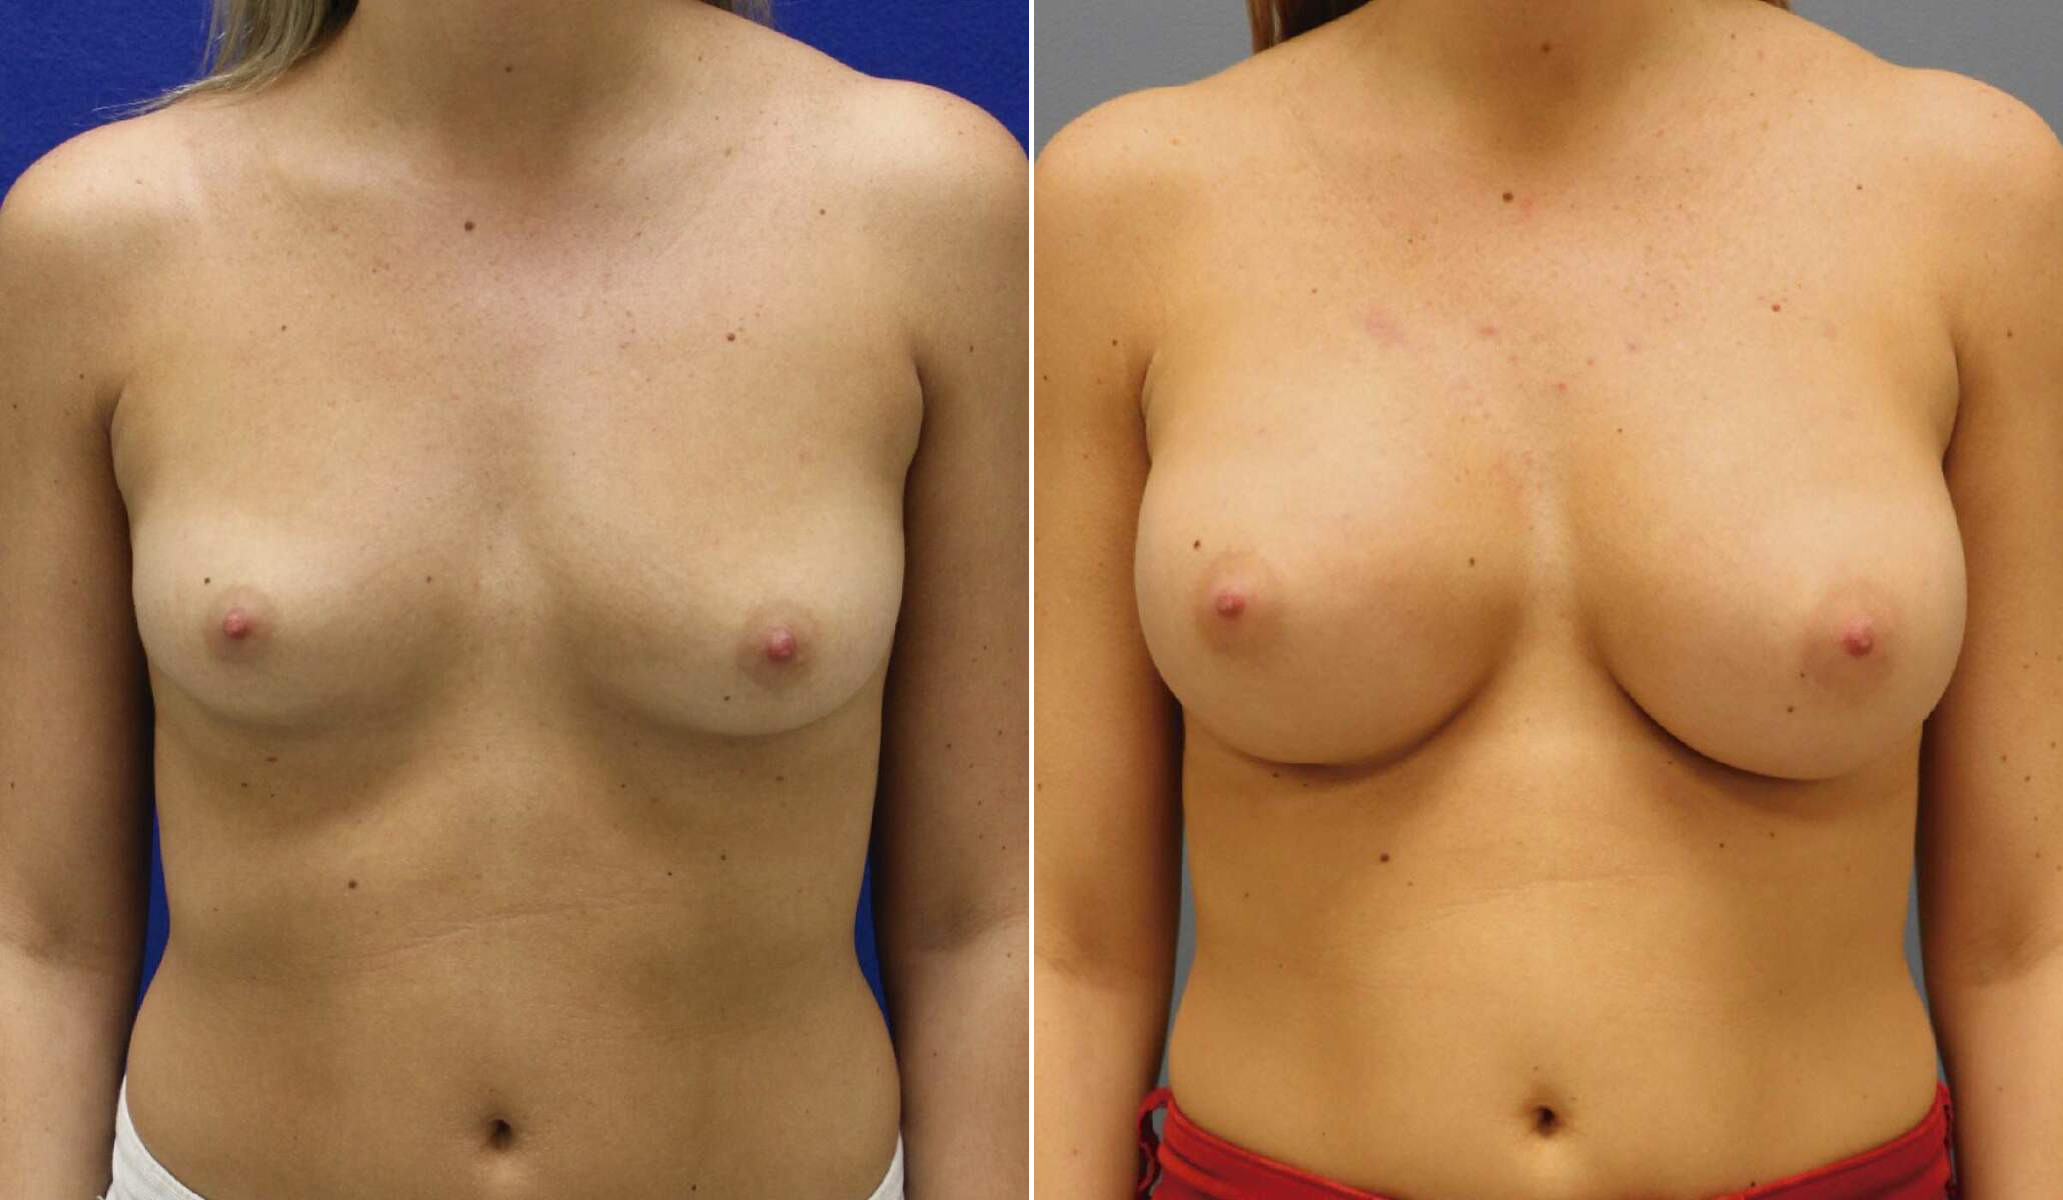 Before and After Photos in , , Breast Augmentation in Lexington, KY